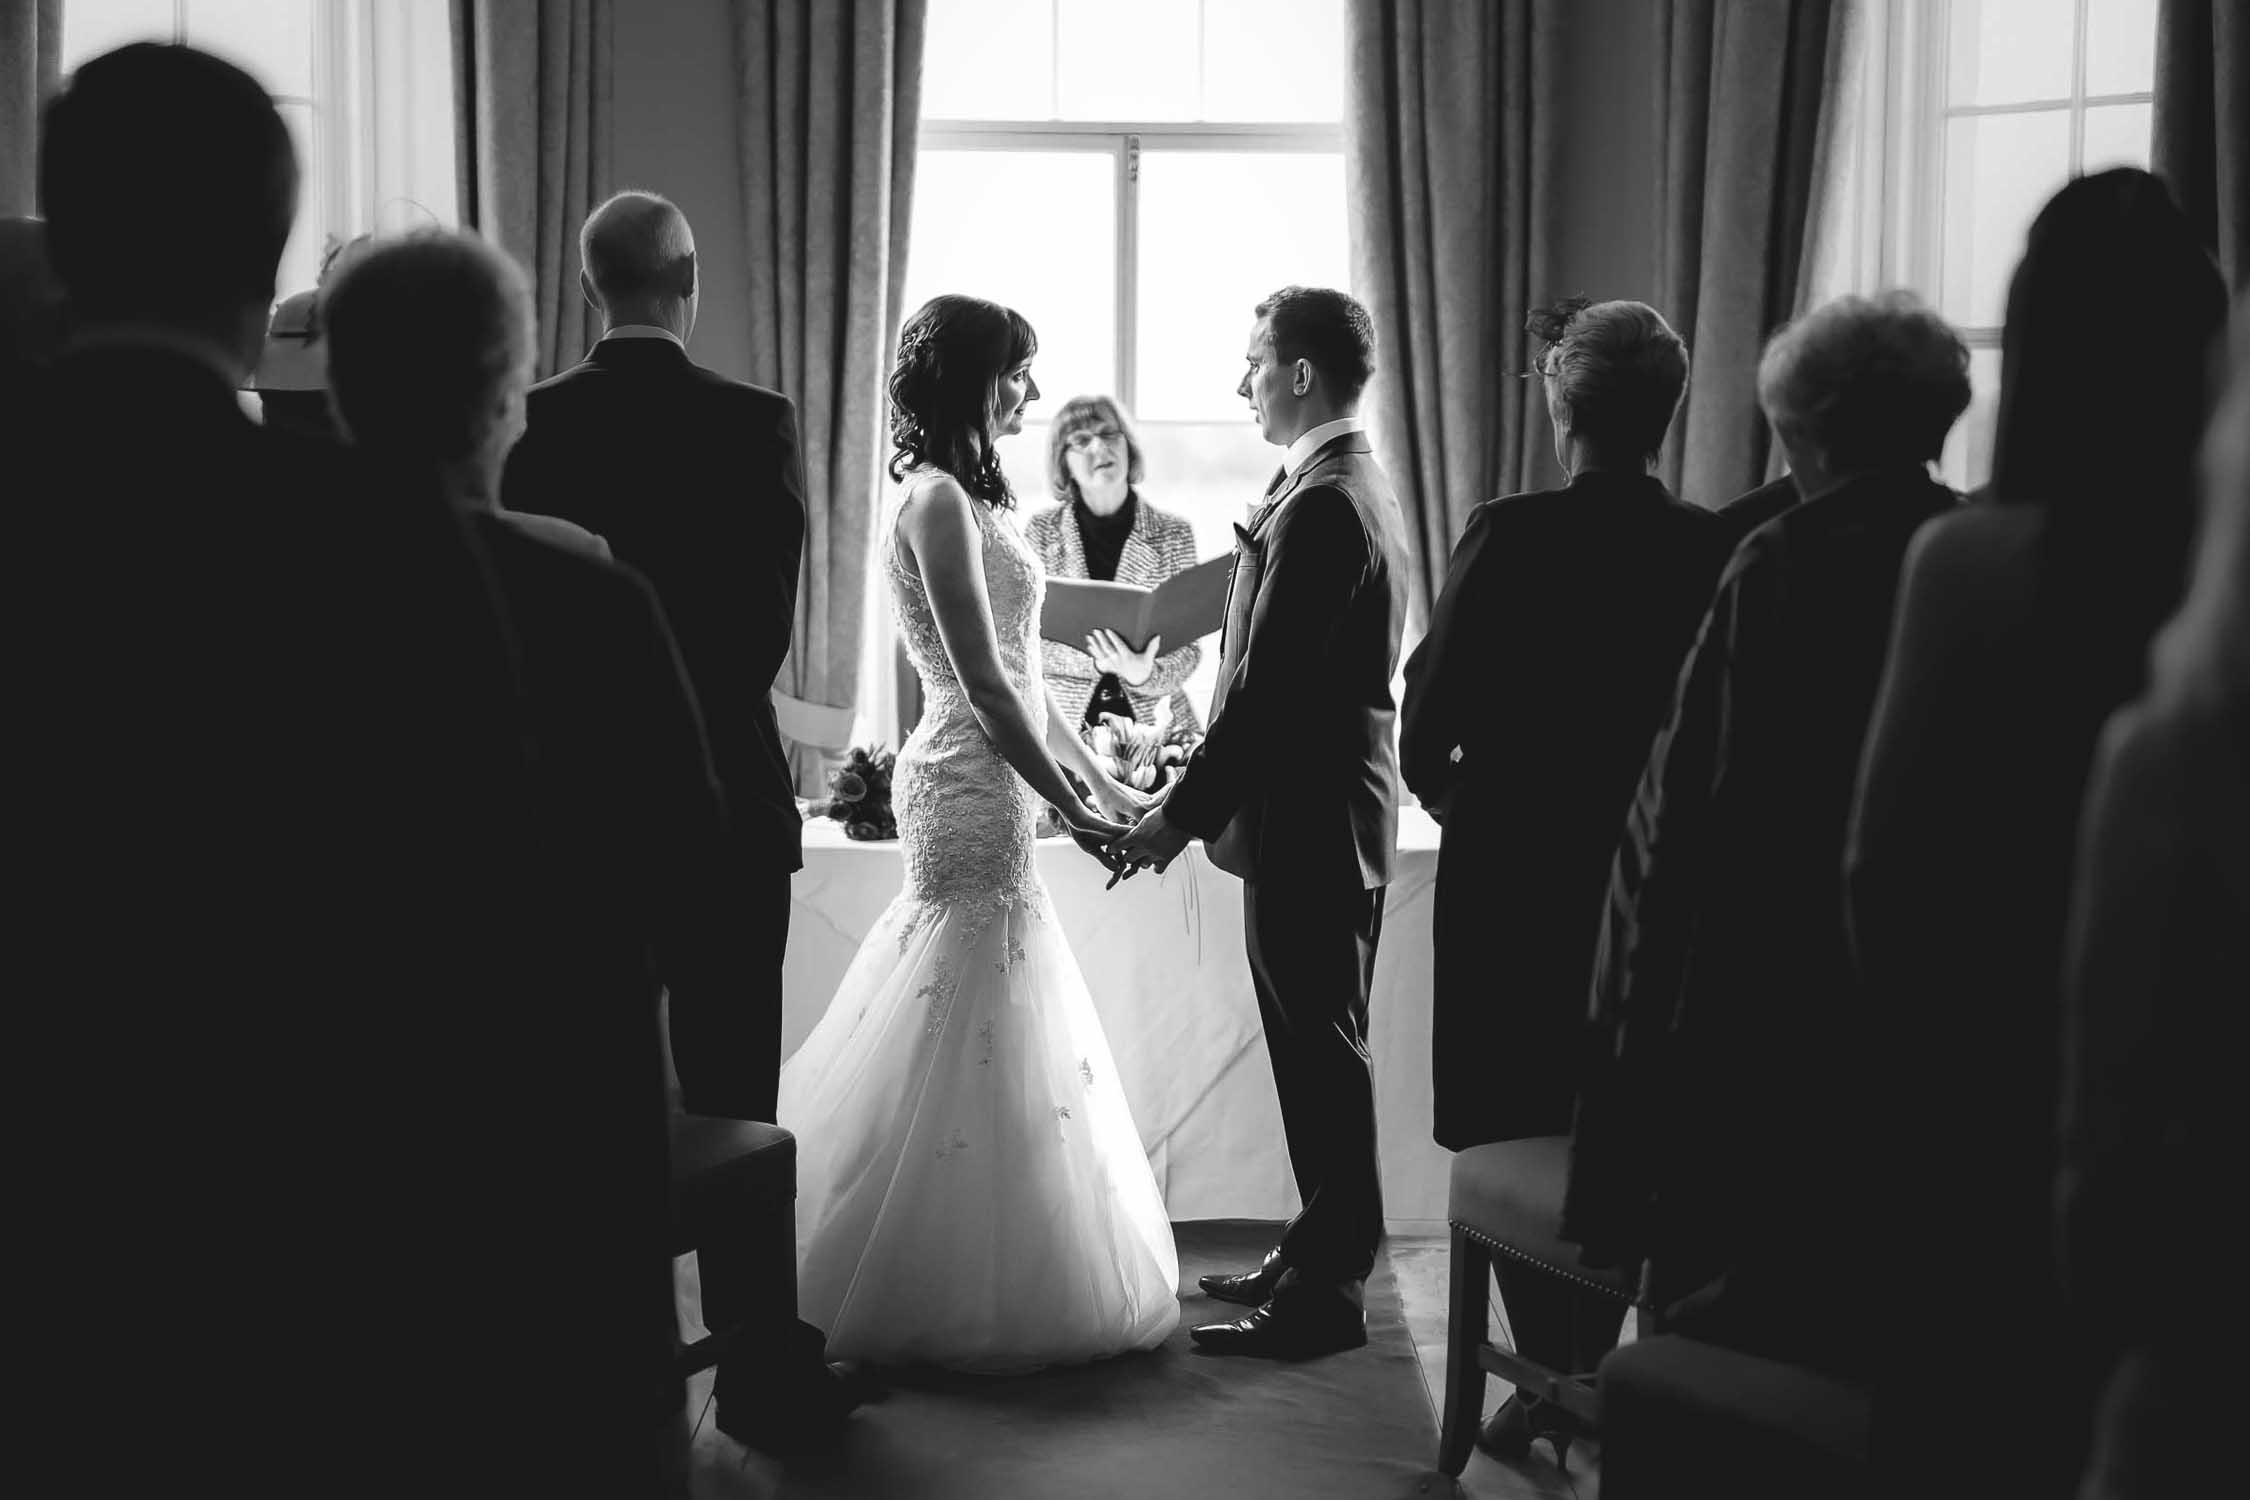 Wedding photographer, Wedding Photographers in Herefordshire, West Midlands wedding photographer, Bride, Groom